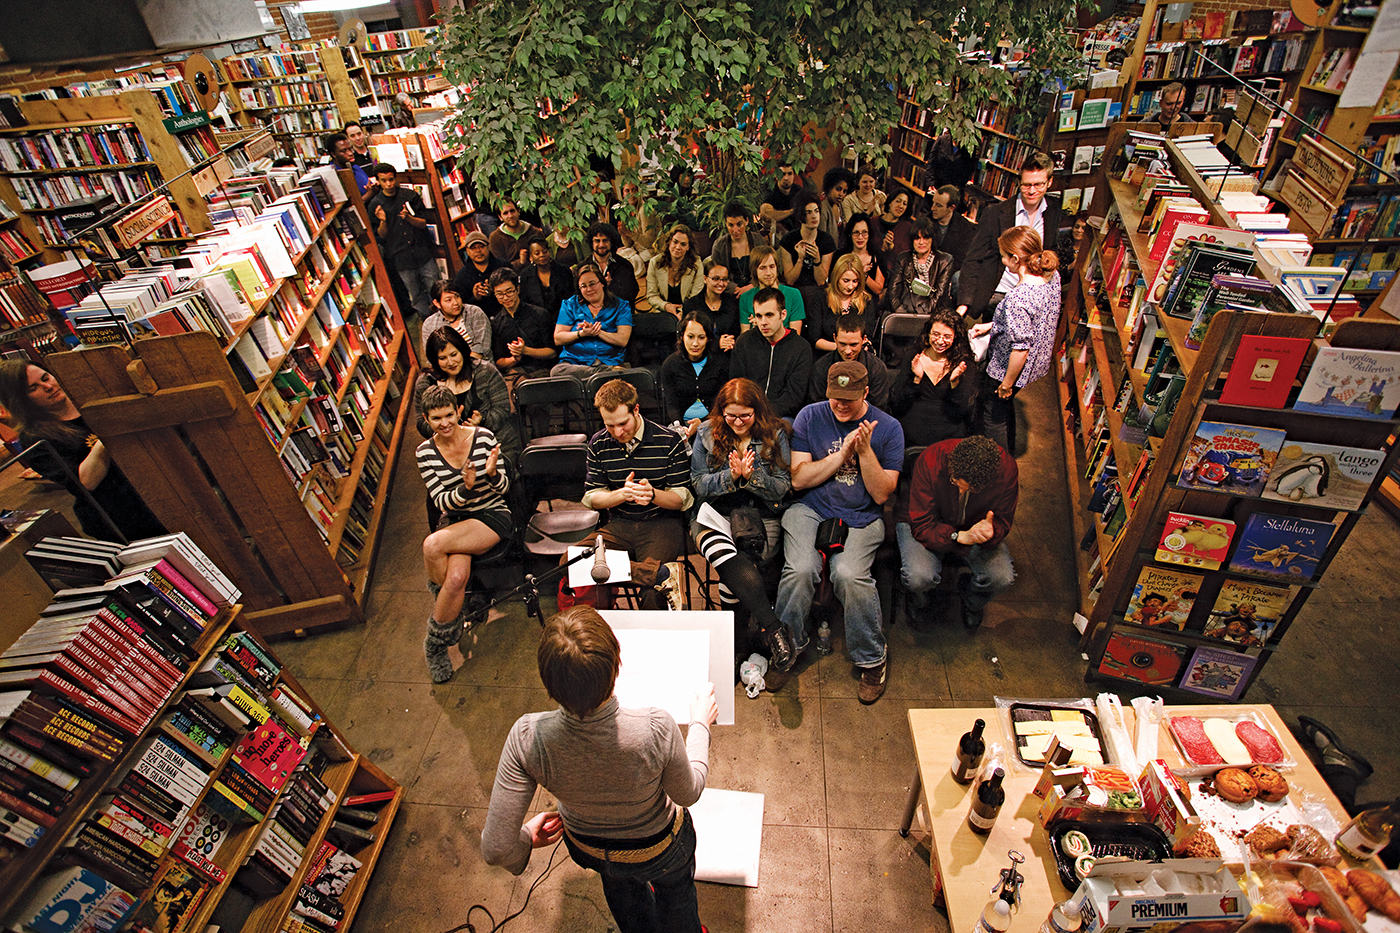 Next Words - Creative Writing MFA reading series at Skylight Books